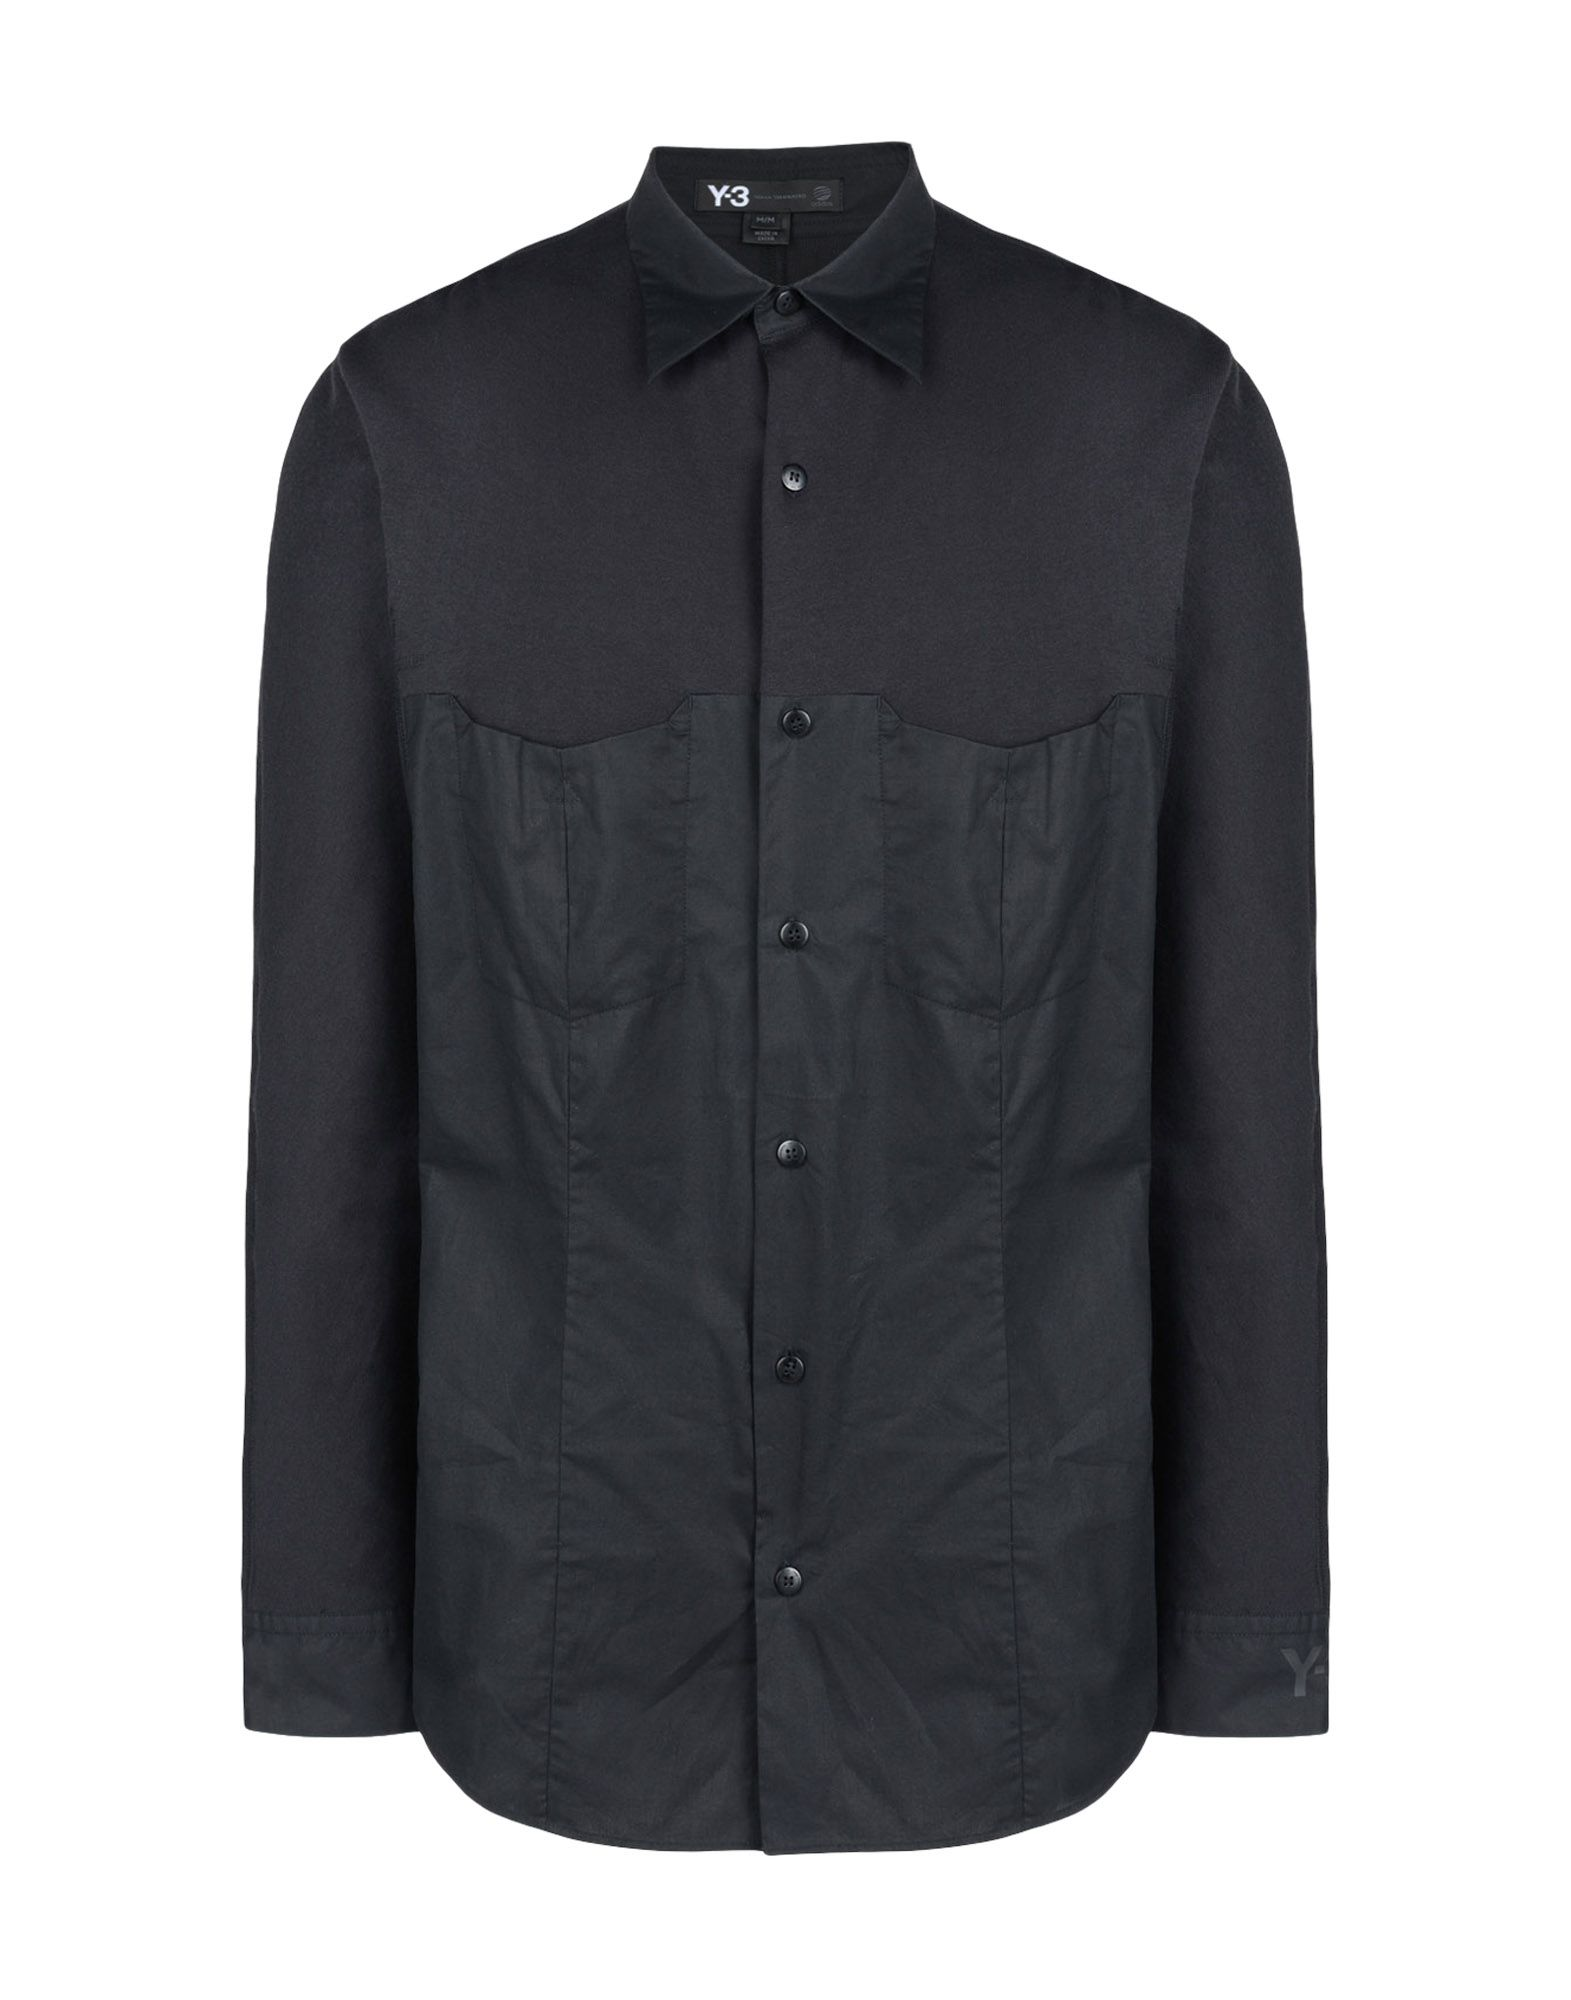 Y 3 MINIMALIST SHIRT Long Sleeve Shirts for Men | Adidas Y-3 ...